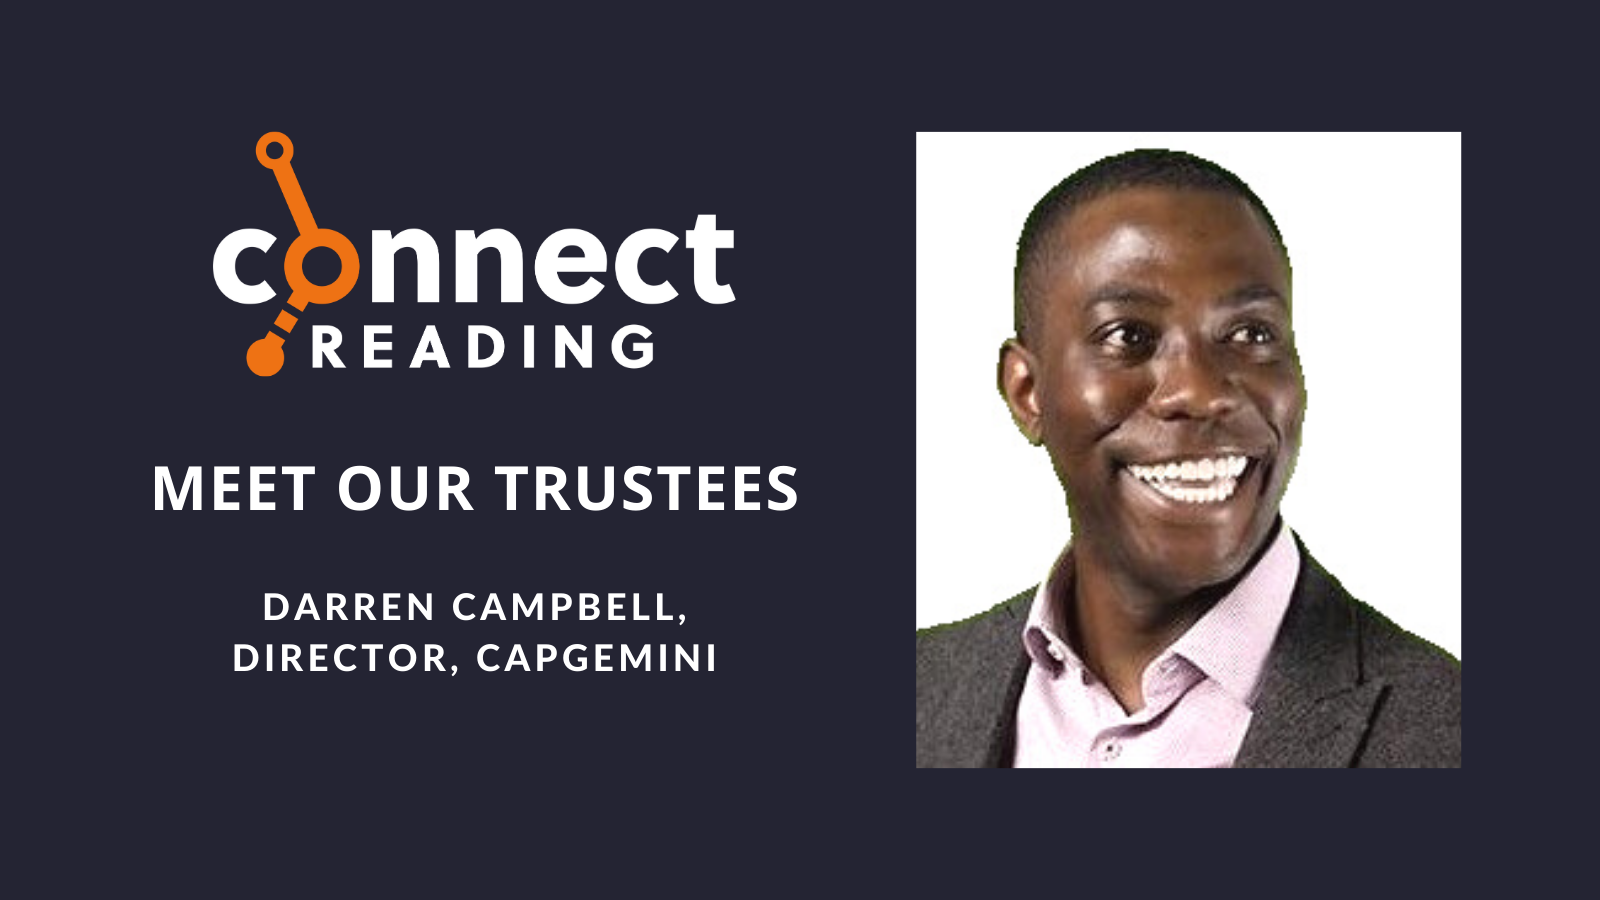 Meet our Trustees: Darren Campbell